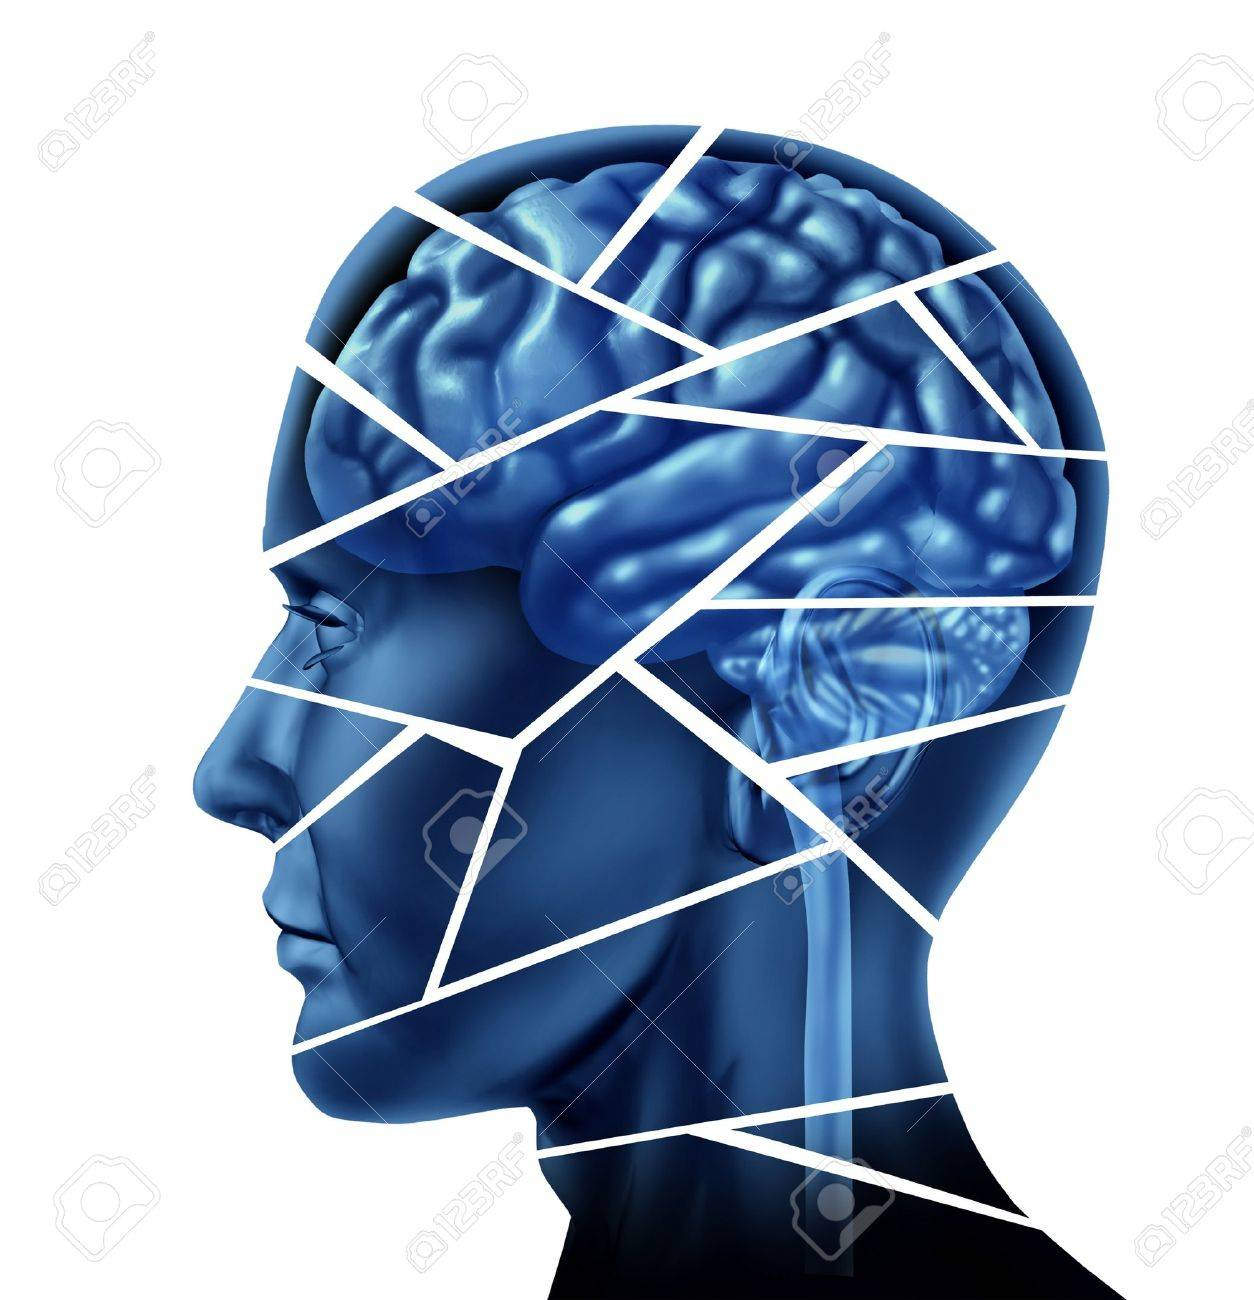 Brain injury and neurological disorder represented by a human head and mind broken in peices to symbolize a severe medical mental trauma and cognitive illness on white background. Stock Photo - 10792814